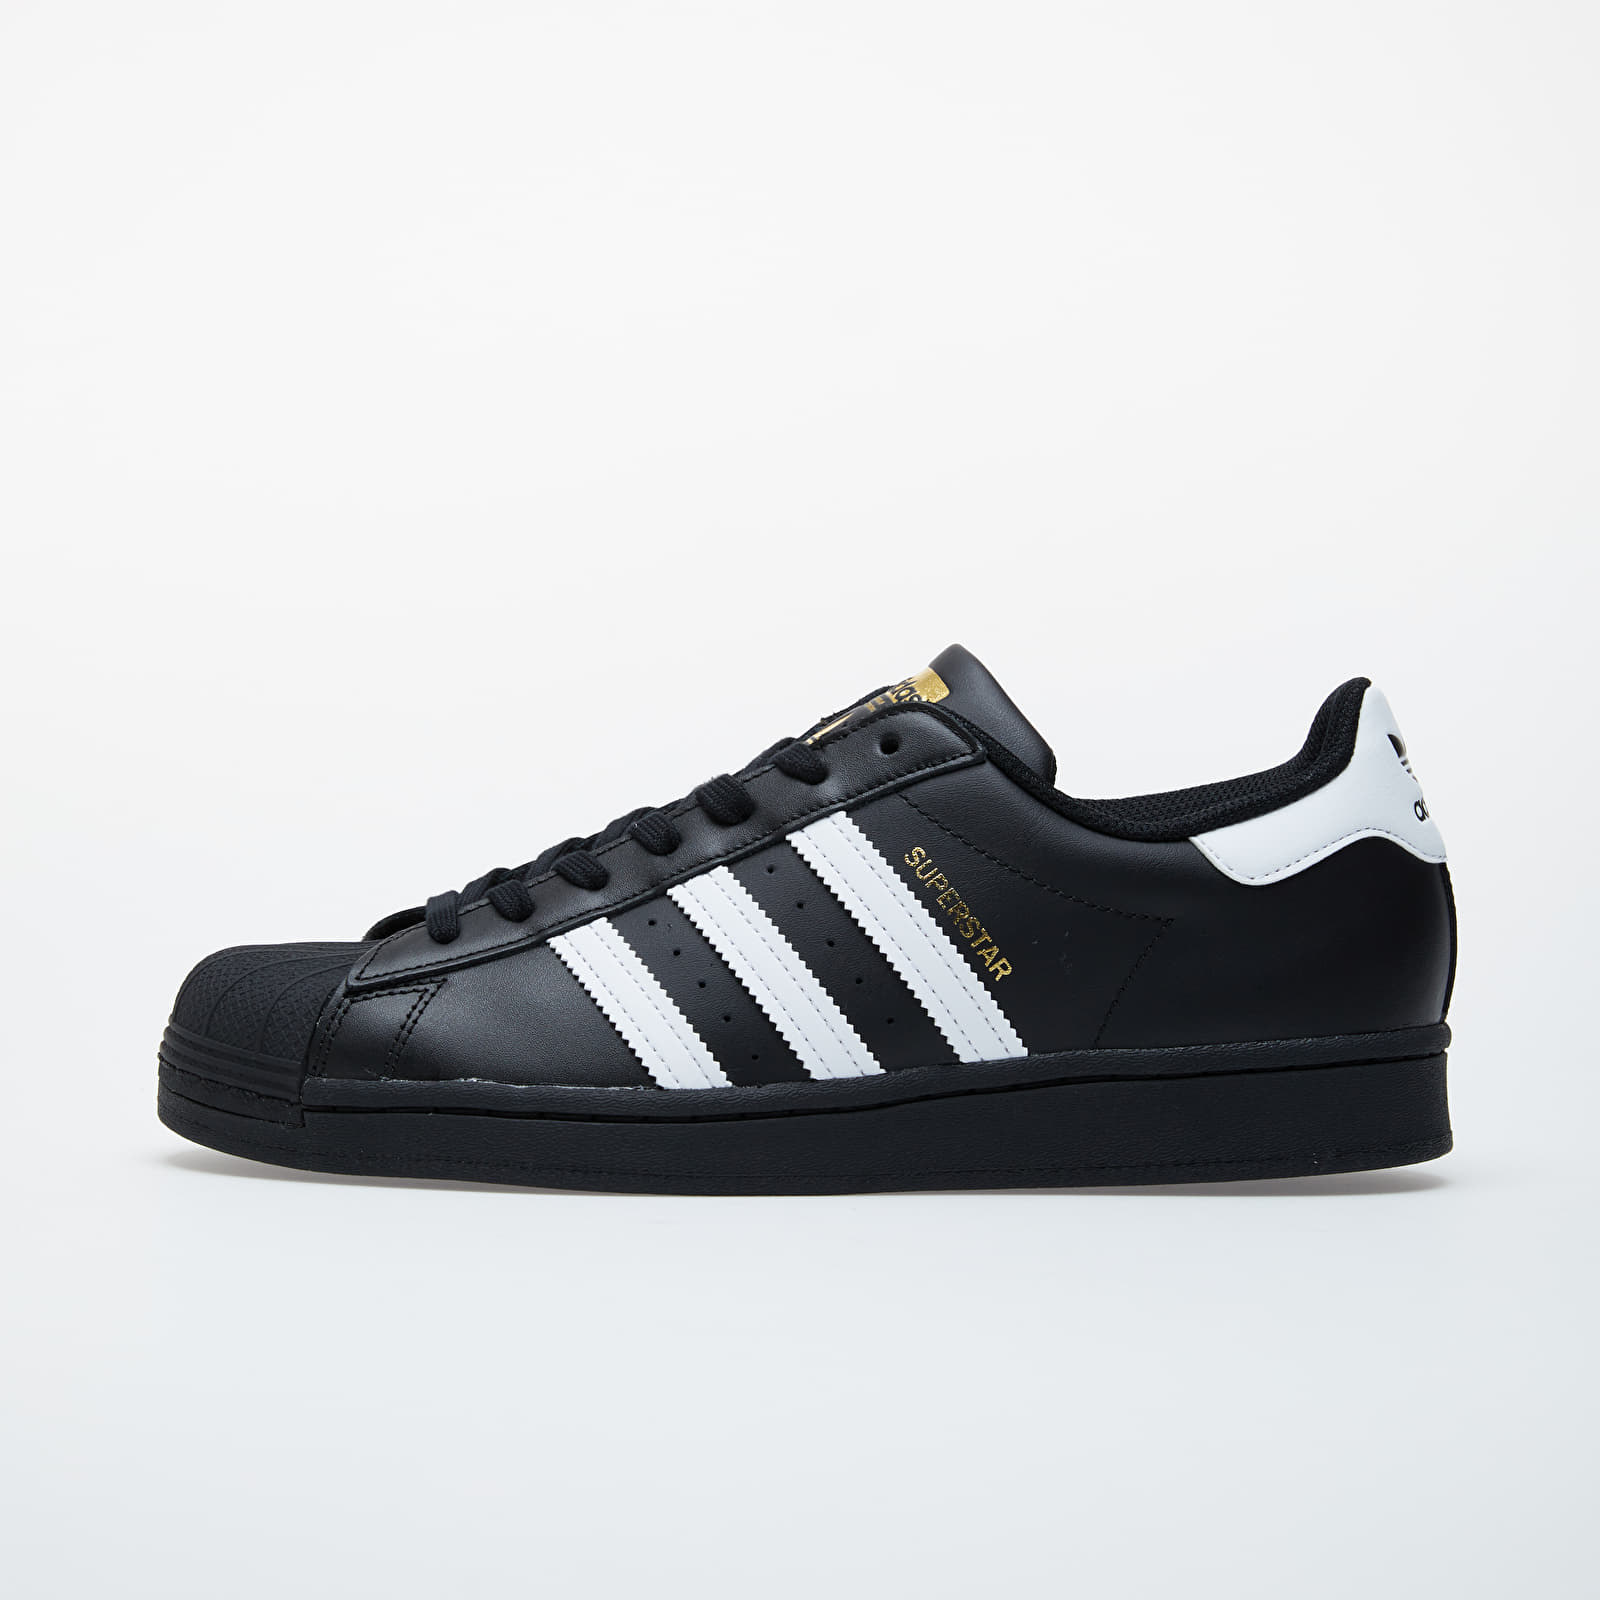 Men's shoes adidas Superstar Core Black/ Ftw White/ Core Black